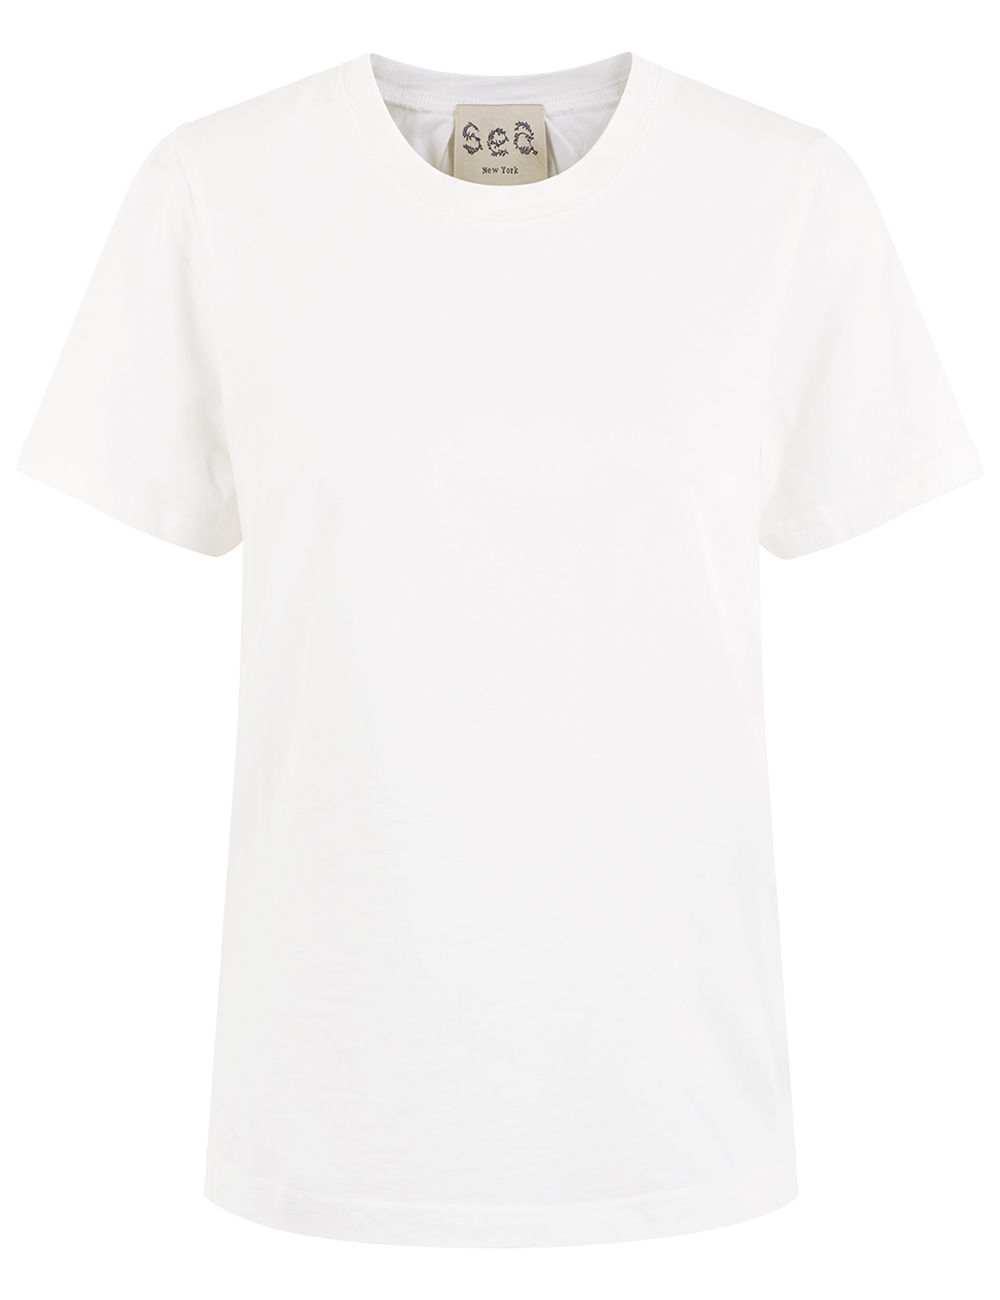 White t shirt artee shirt for Who makes the best white t shirts